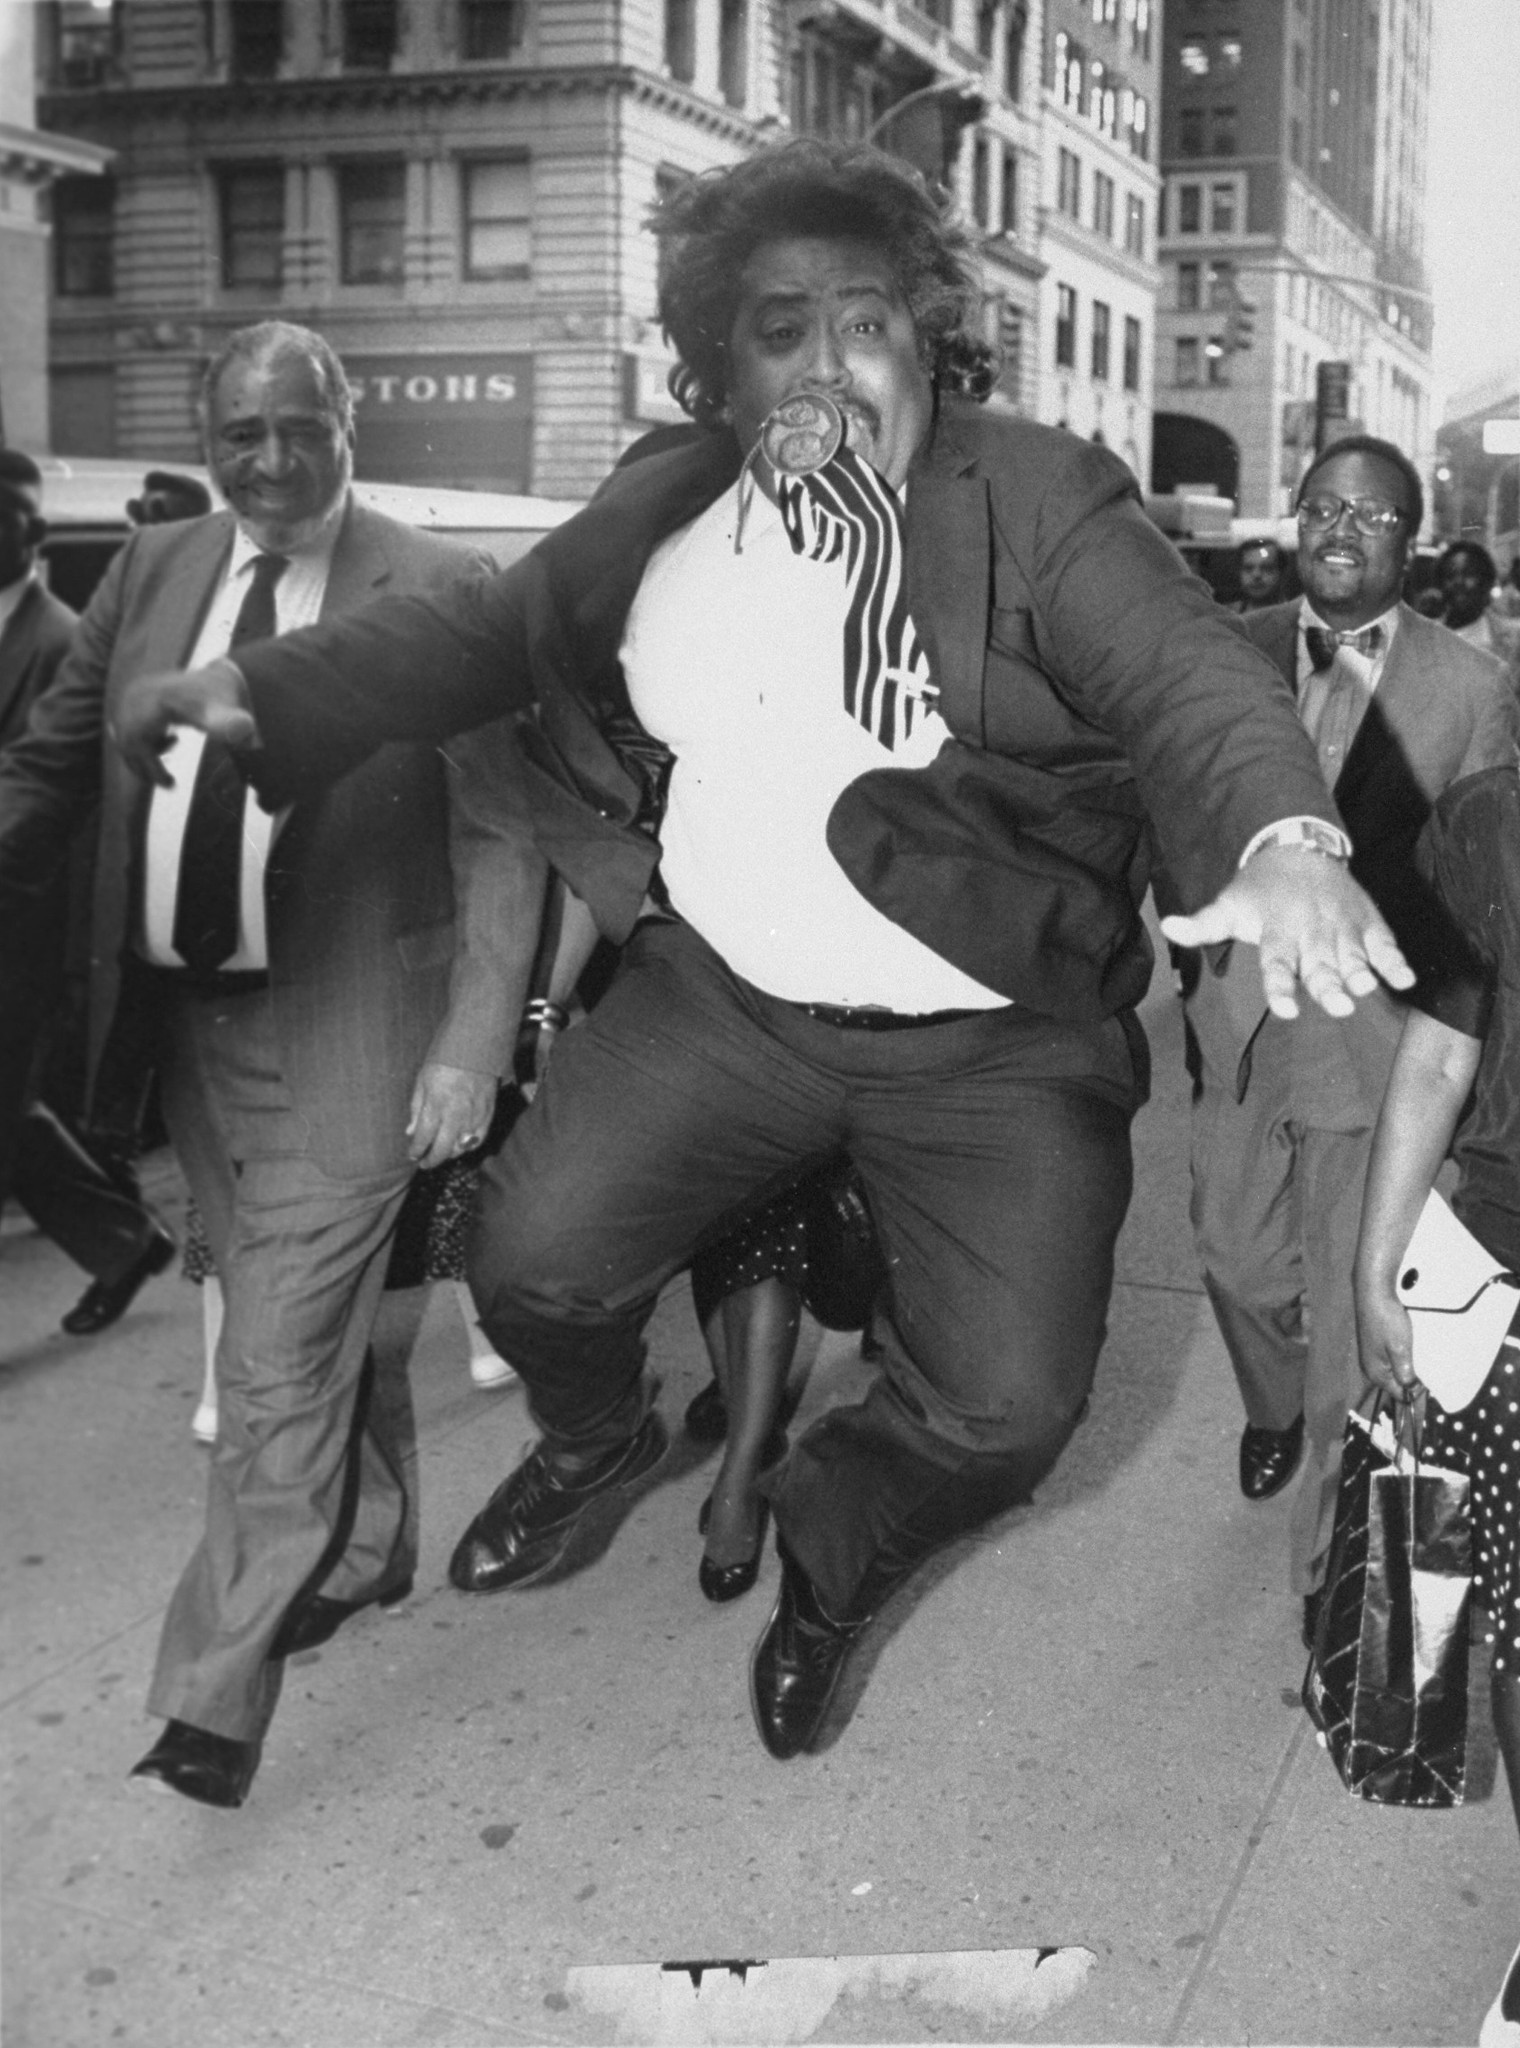 The Rev. Al Sharpton celebrates sentencing of Joey Fama and Keith Mondello for the murder of Yusef Hawkins outside a Brooklyn Court in New York City, June 11, 1990.